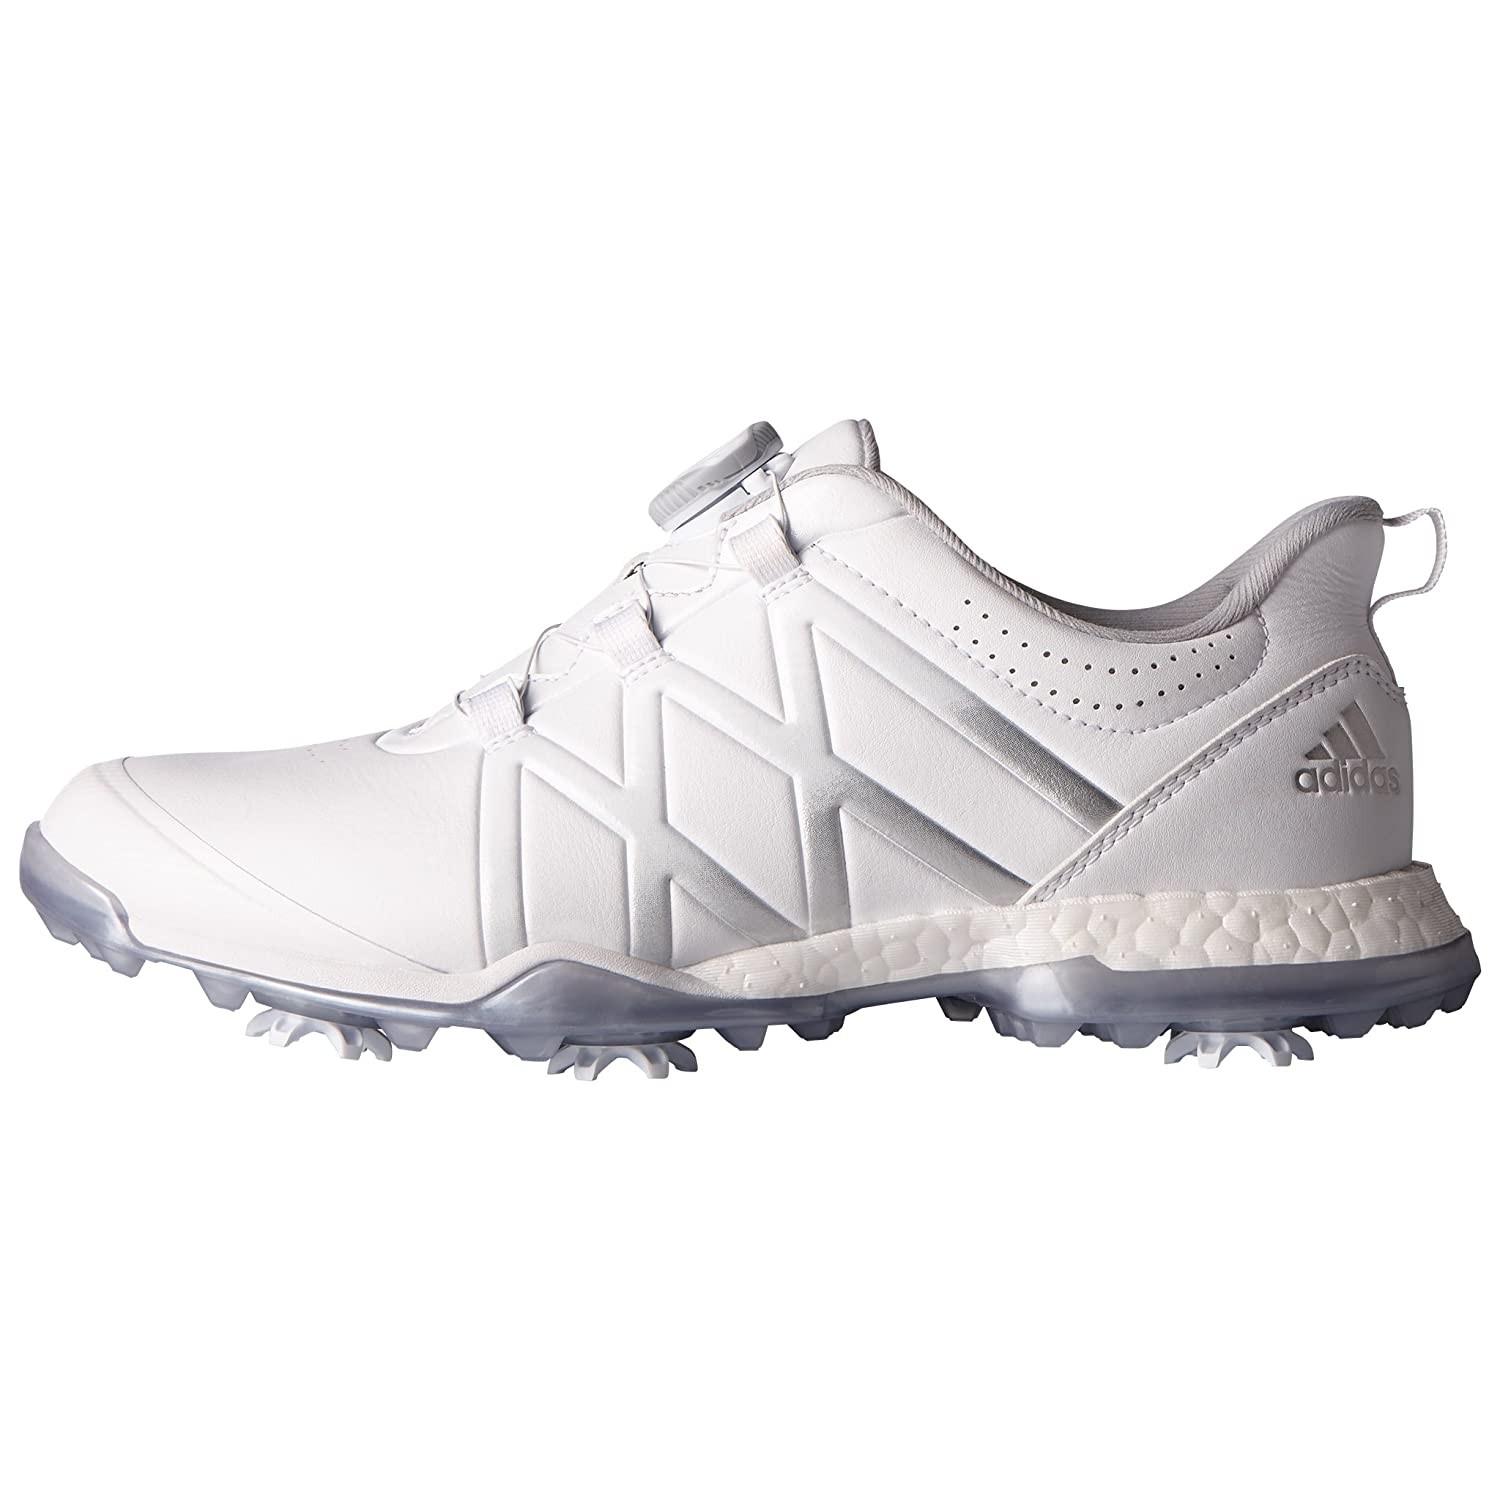 adidas V23527 Chaussures Boost Boa pour Femme Blanc, Taille